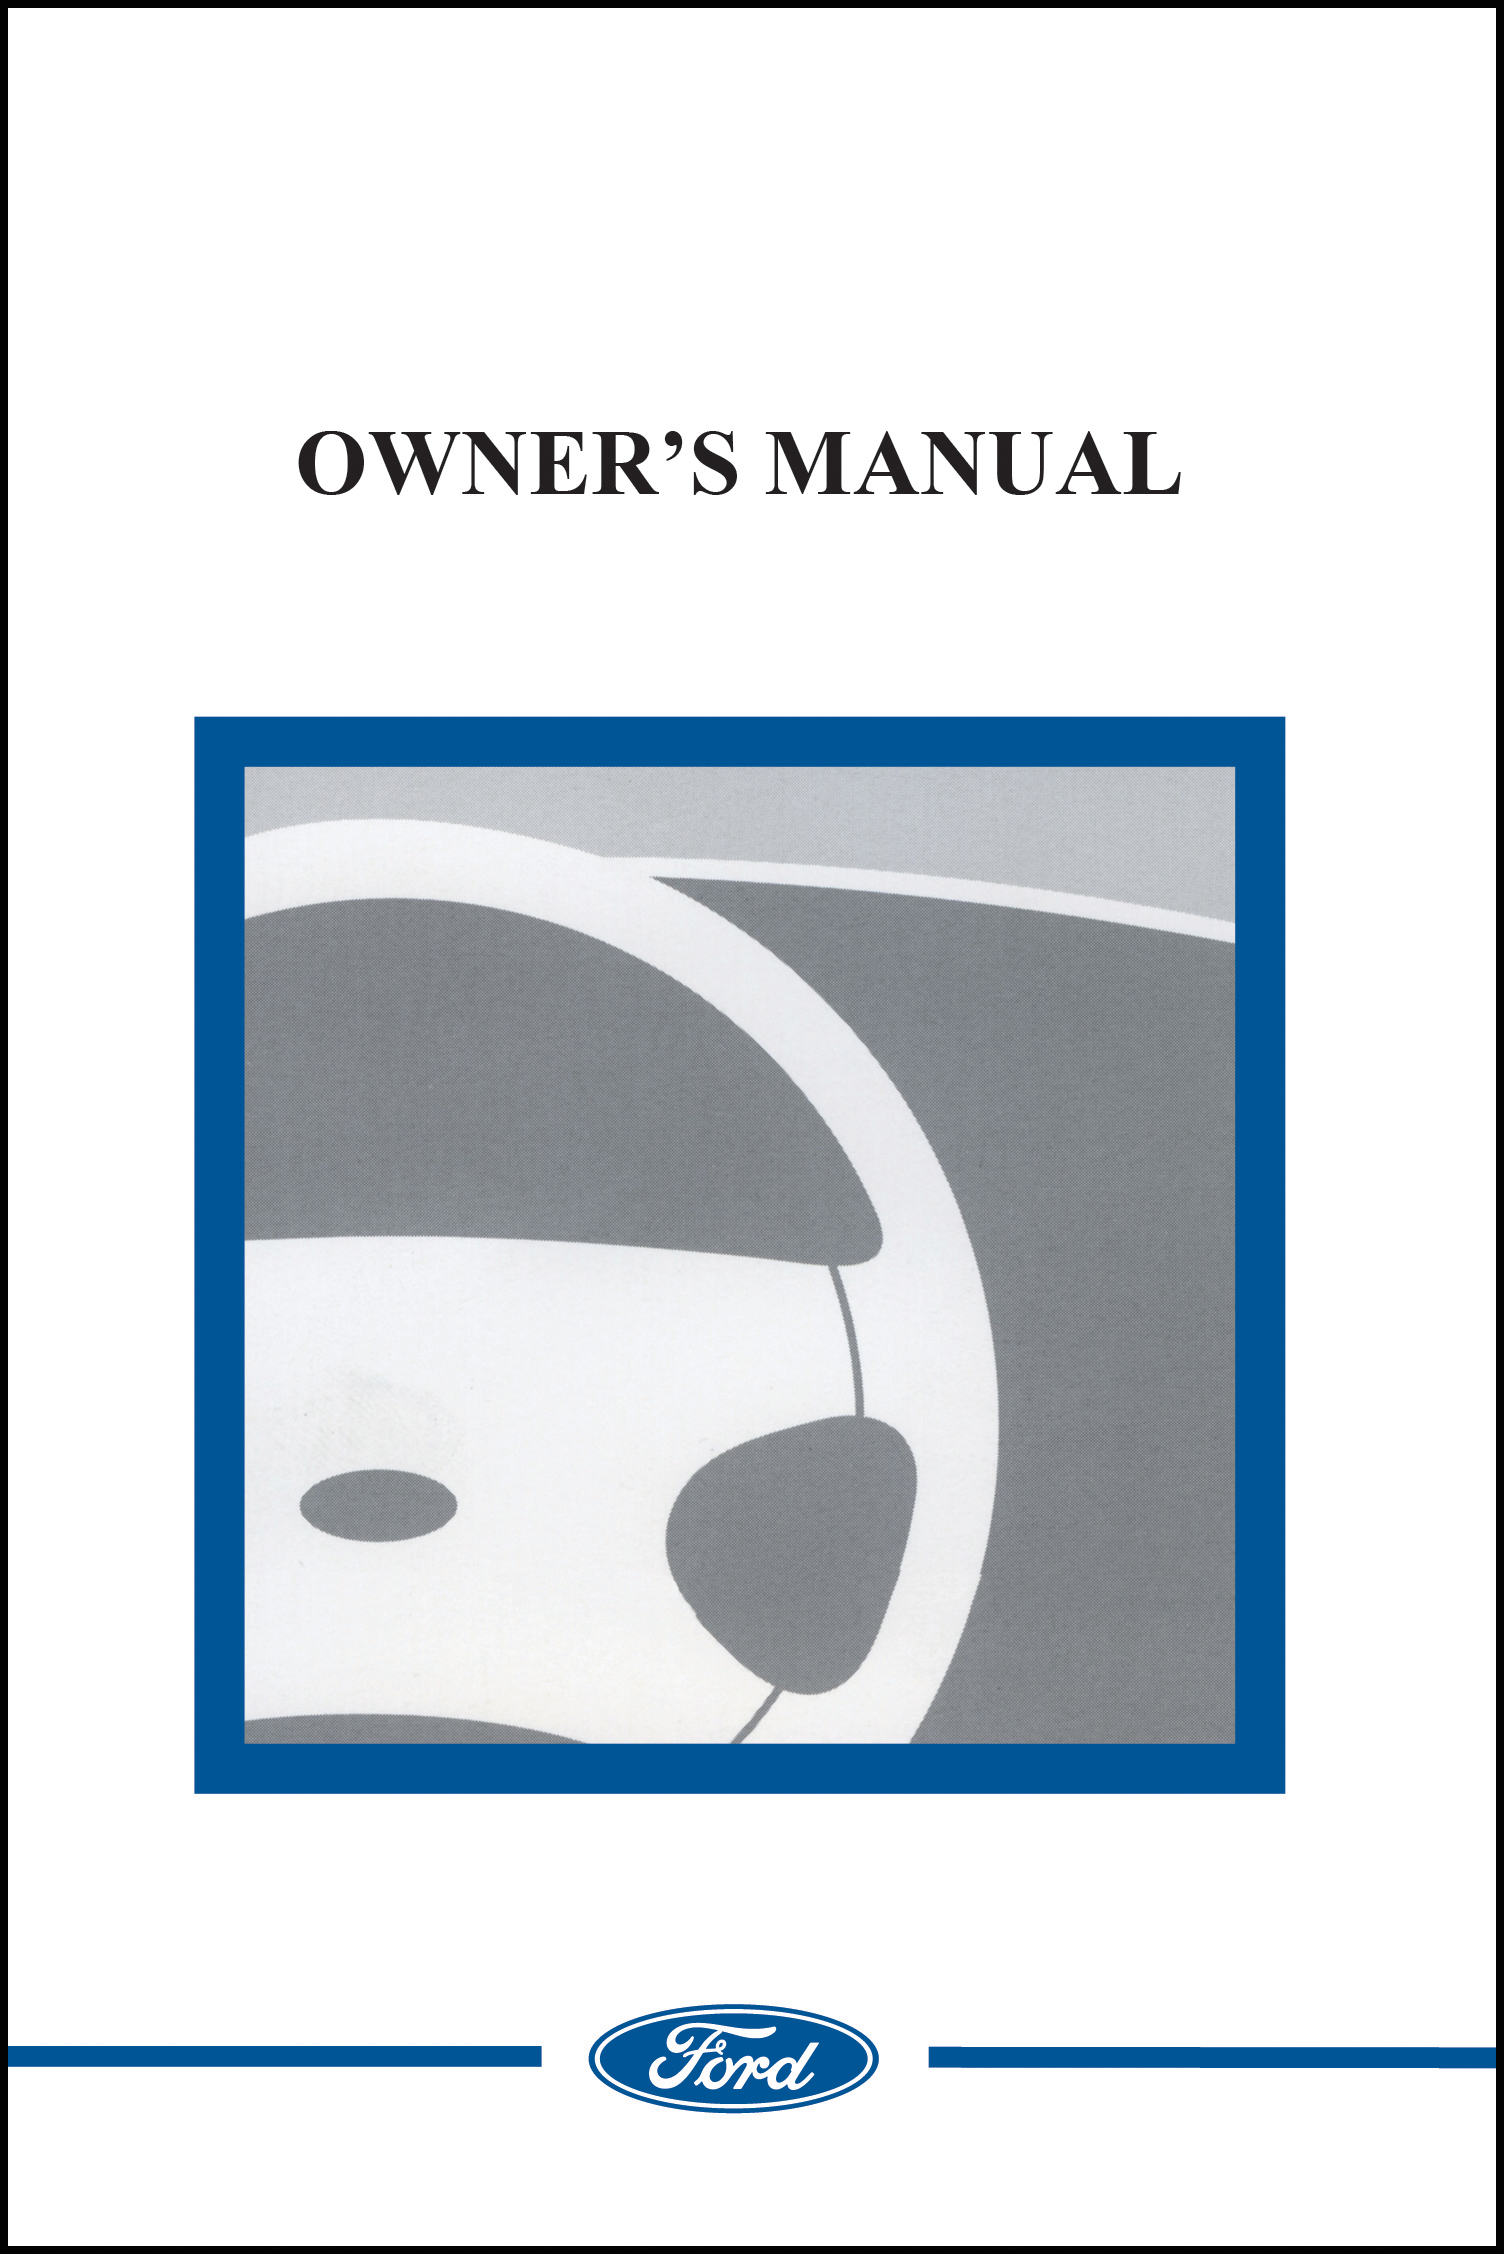 ford 2012 f250 f550 owner manual us 12 ebay rh ebay com 2008 ford f250 owners manual 2007 ford super duty owners manual